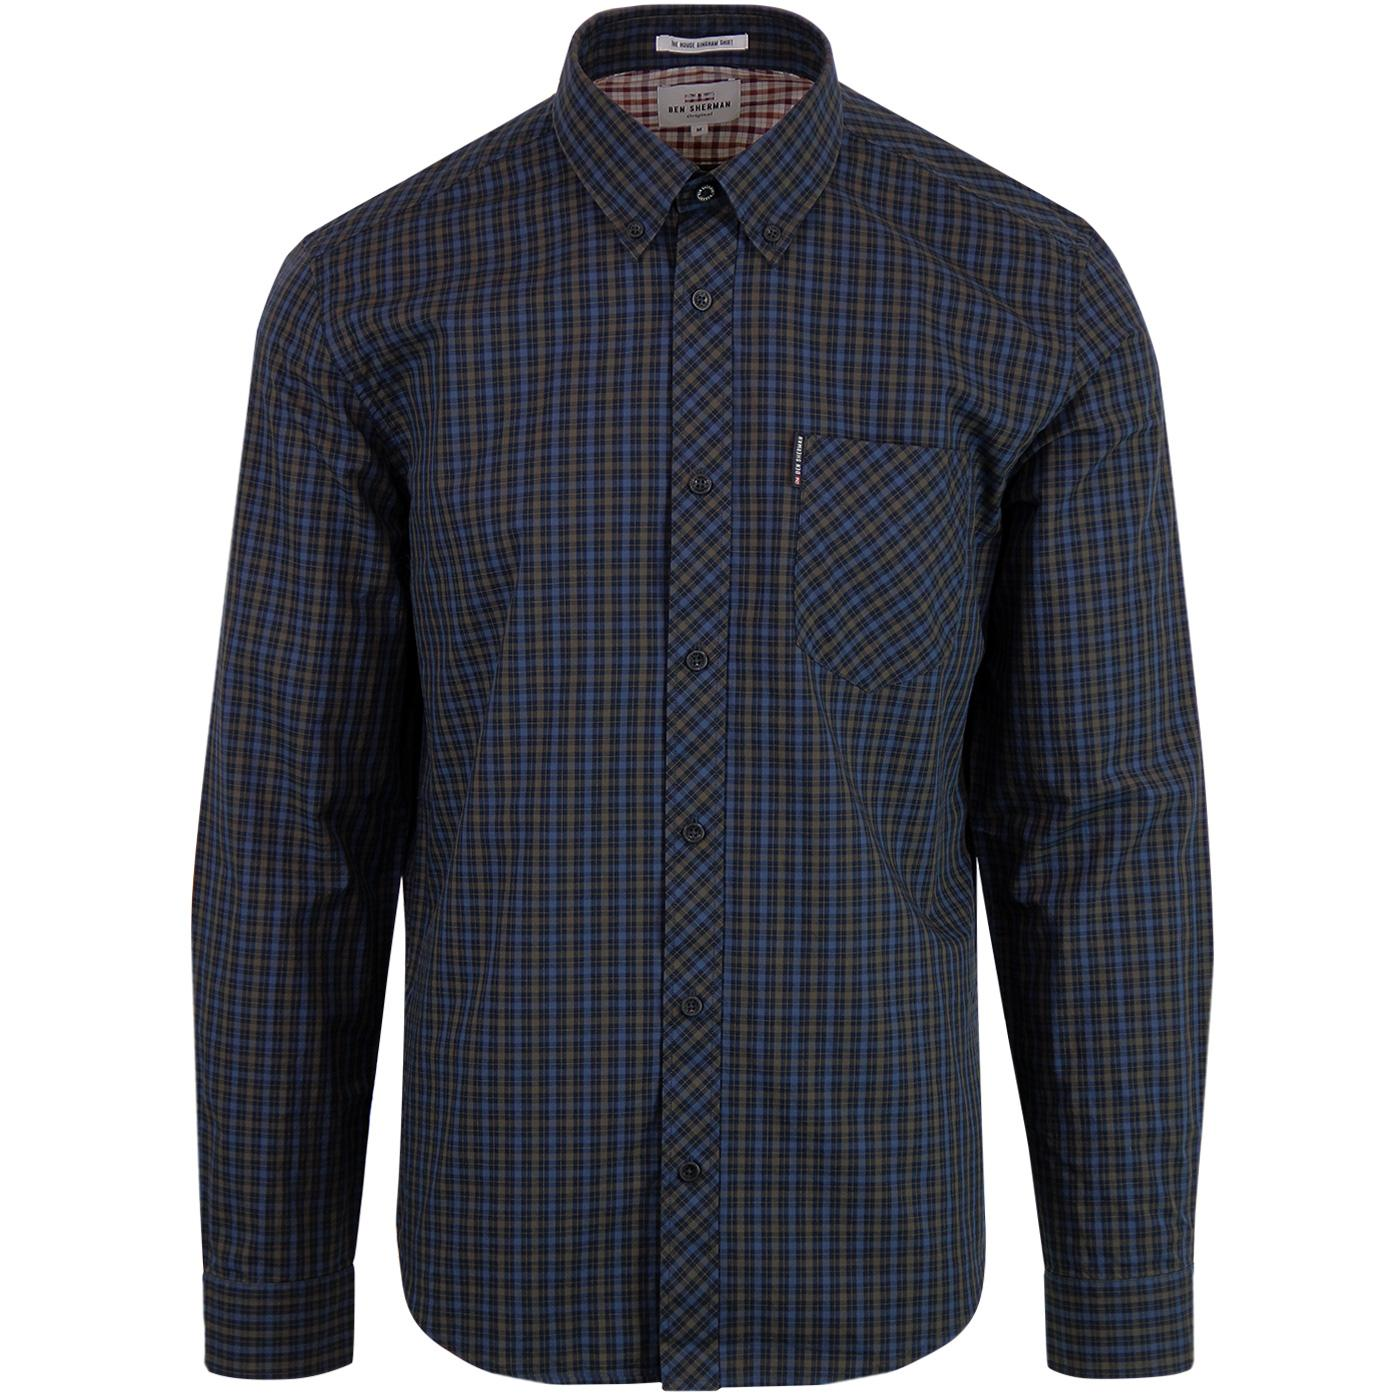 BEN SHERMAN Men's Retro Mod House Check Shirt BARK